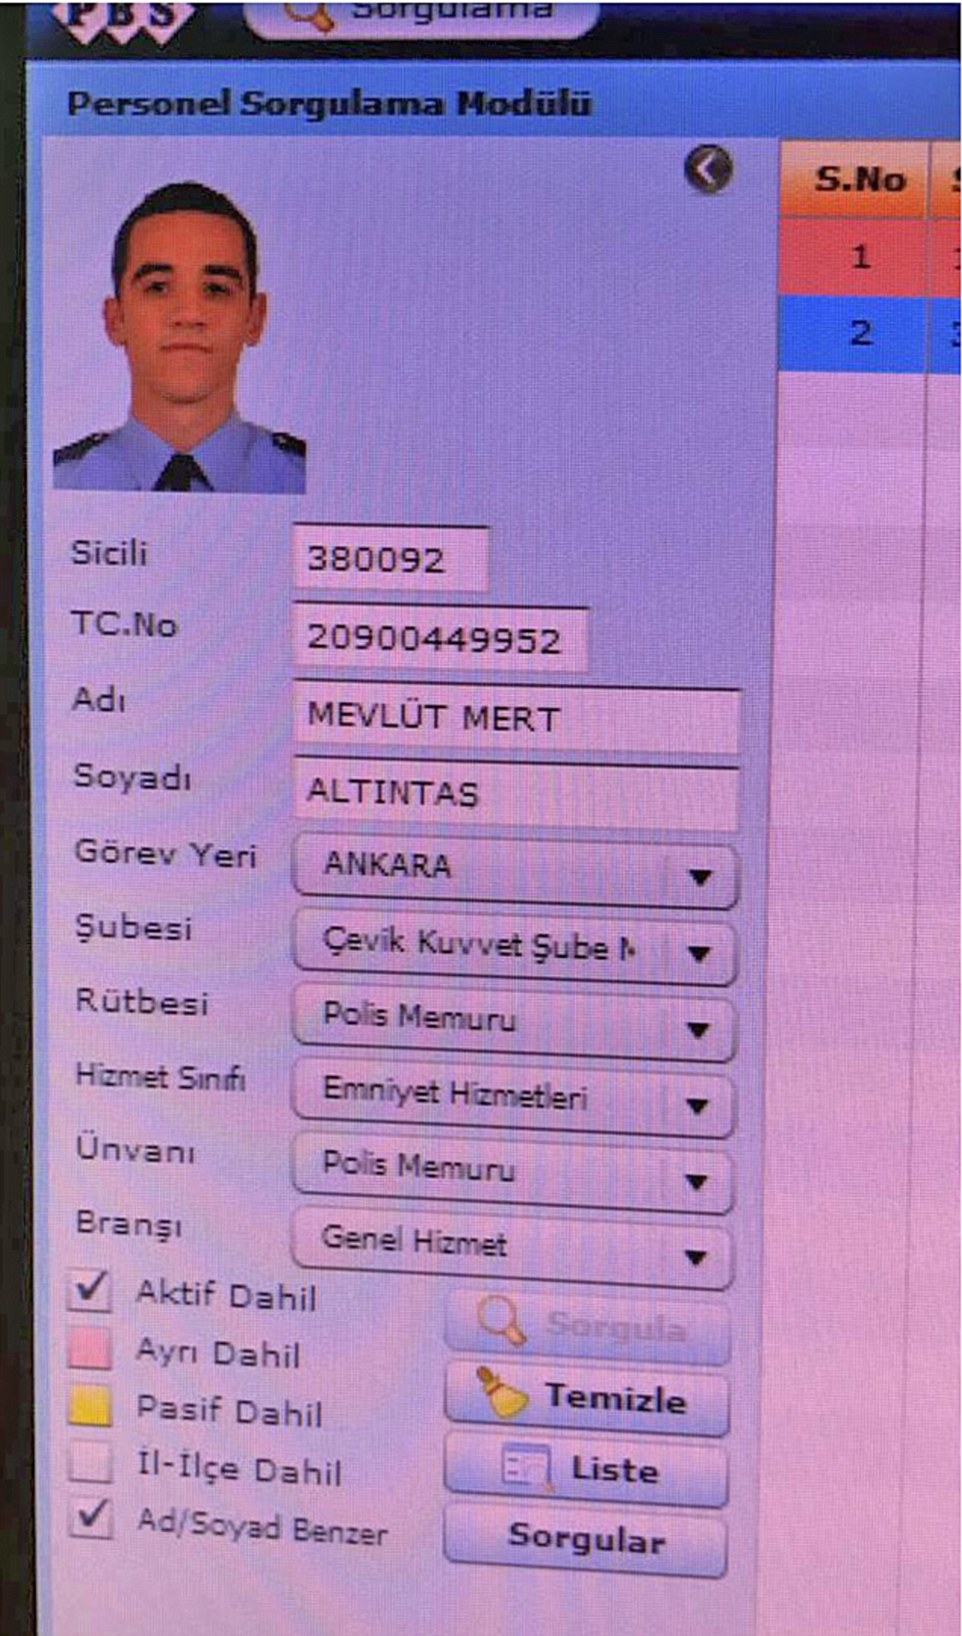 Another Turkish website claimed to show sections of Altintas's personnel file